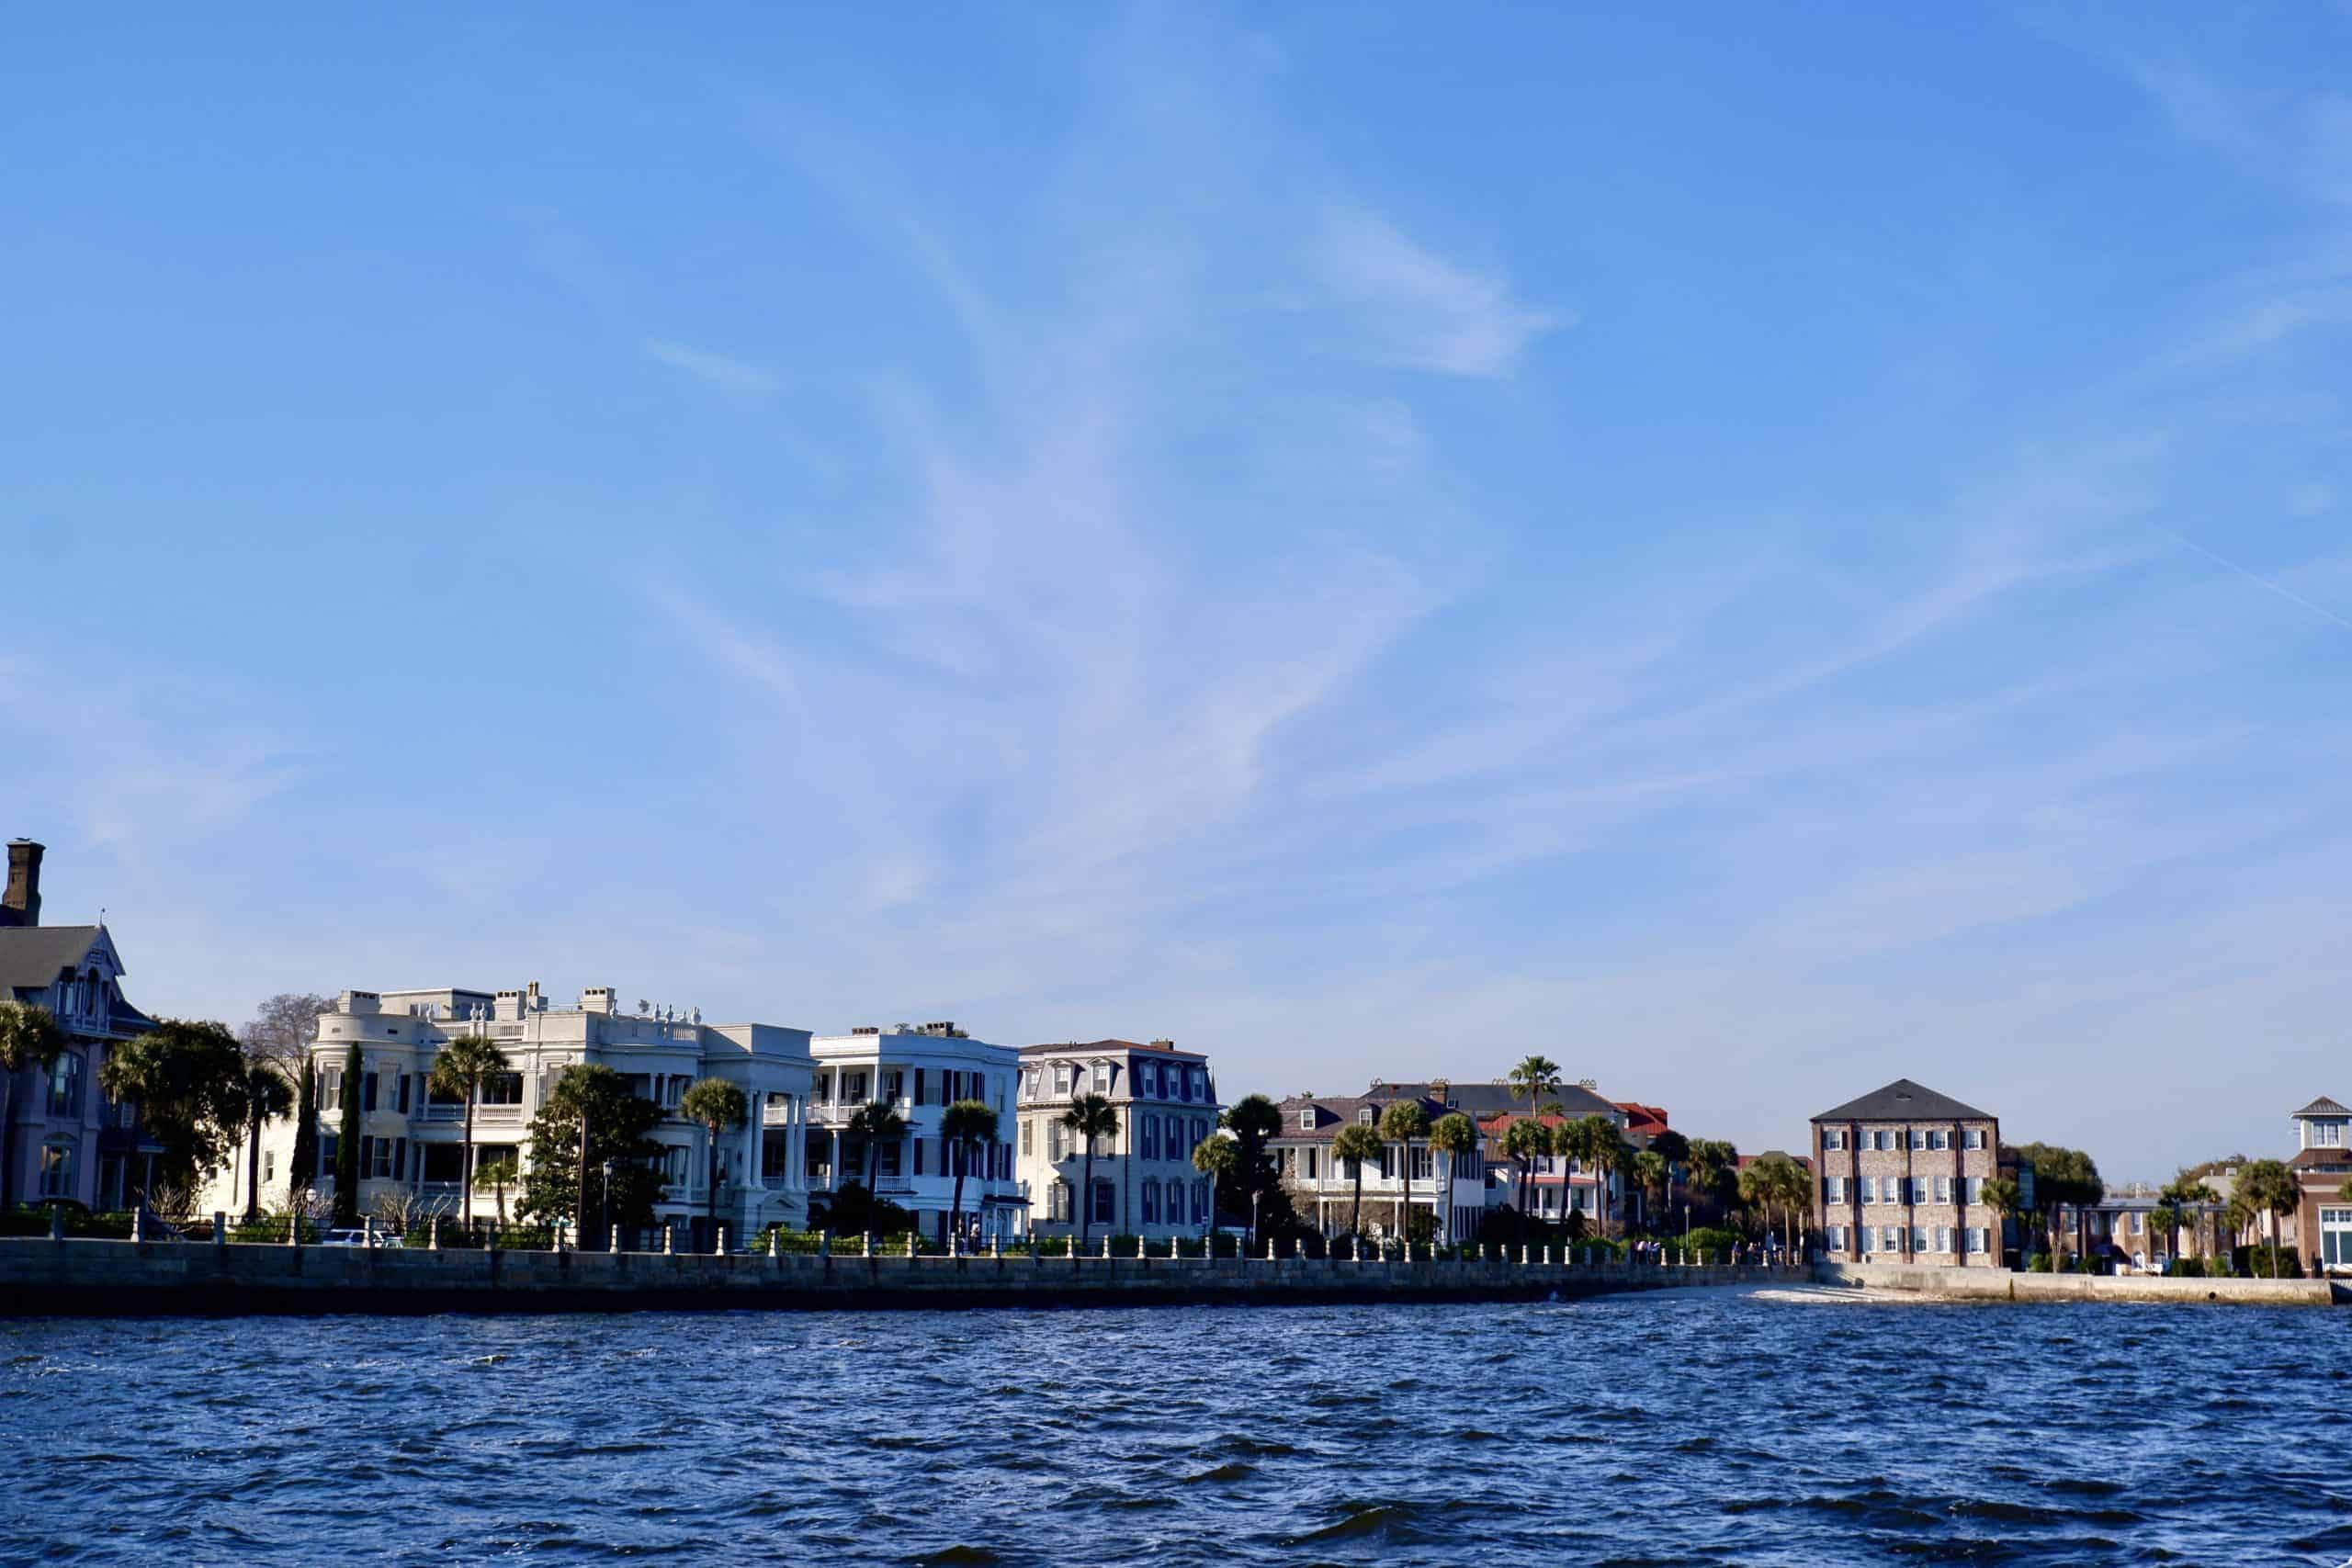 View of The Battery from the water. Family boat charters Charleston, SC